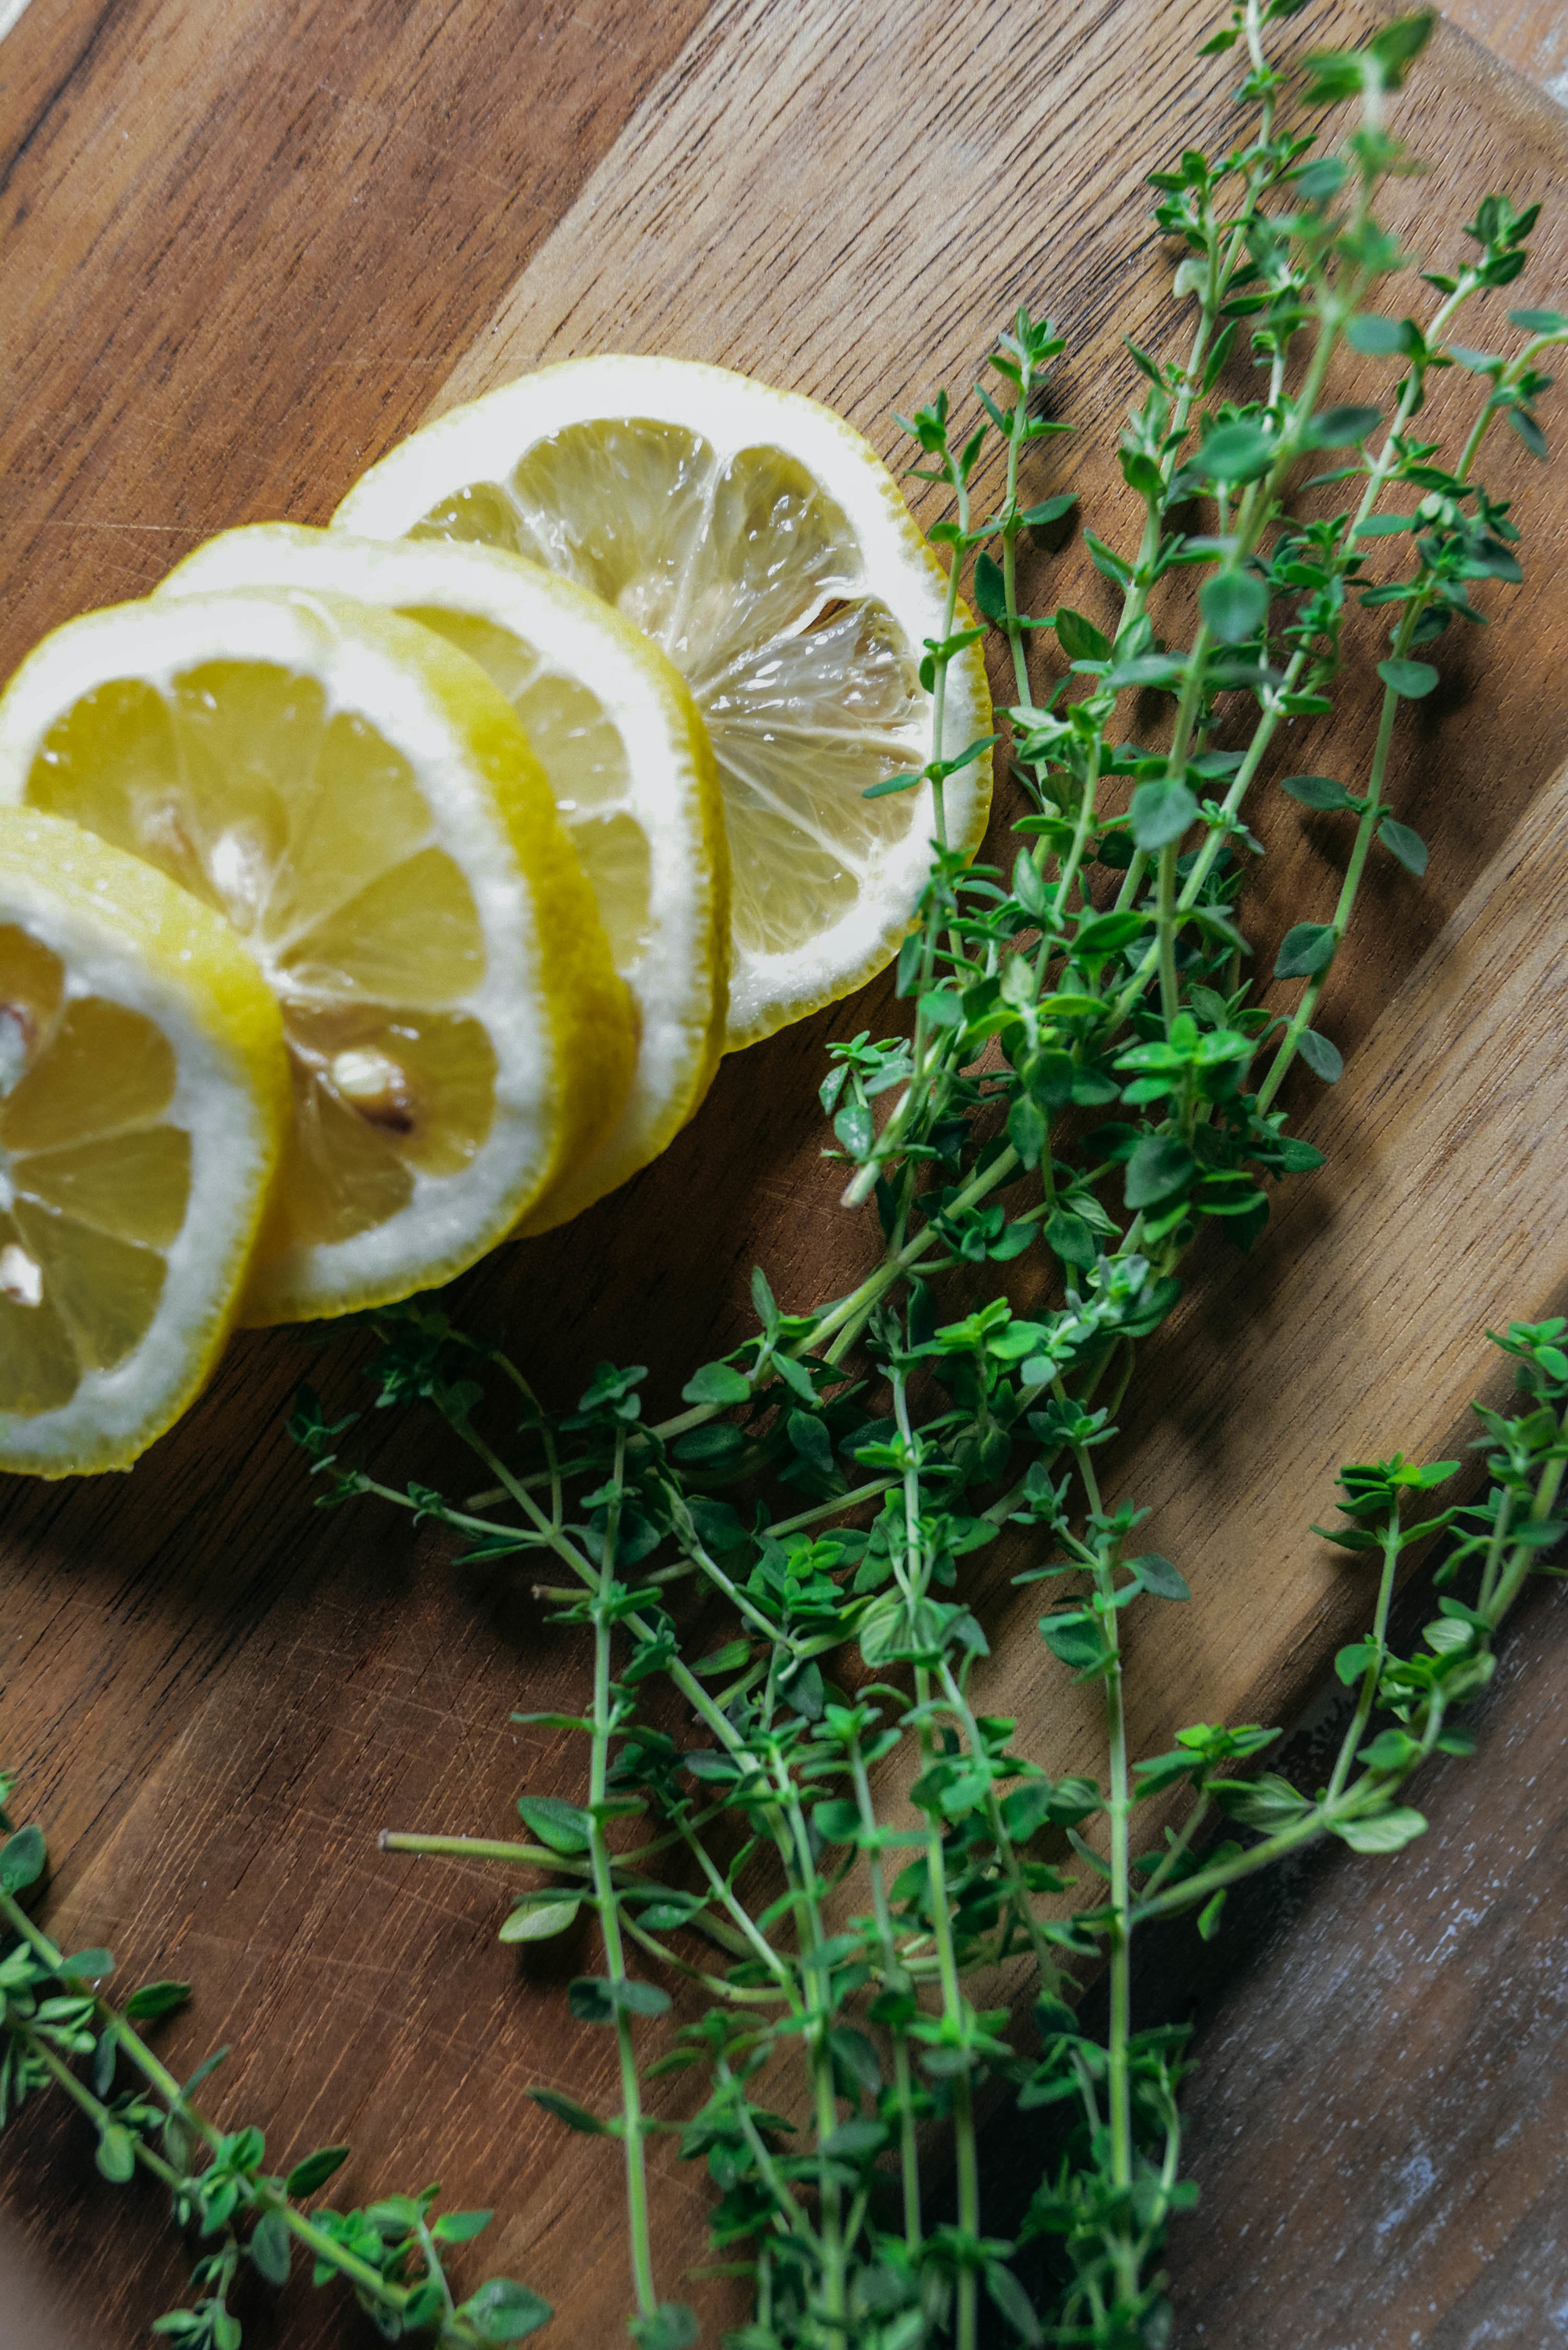 lemon slices and thyme